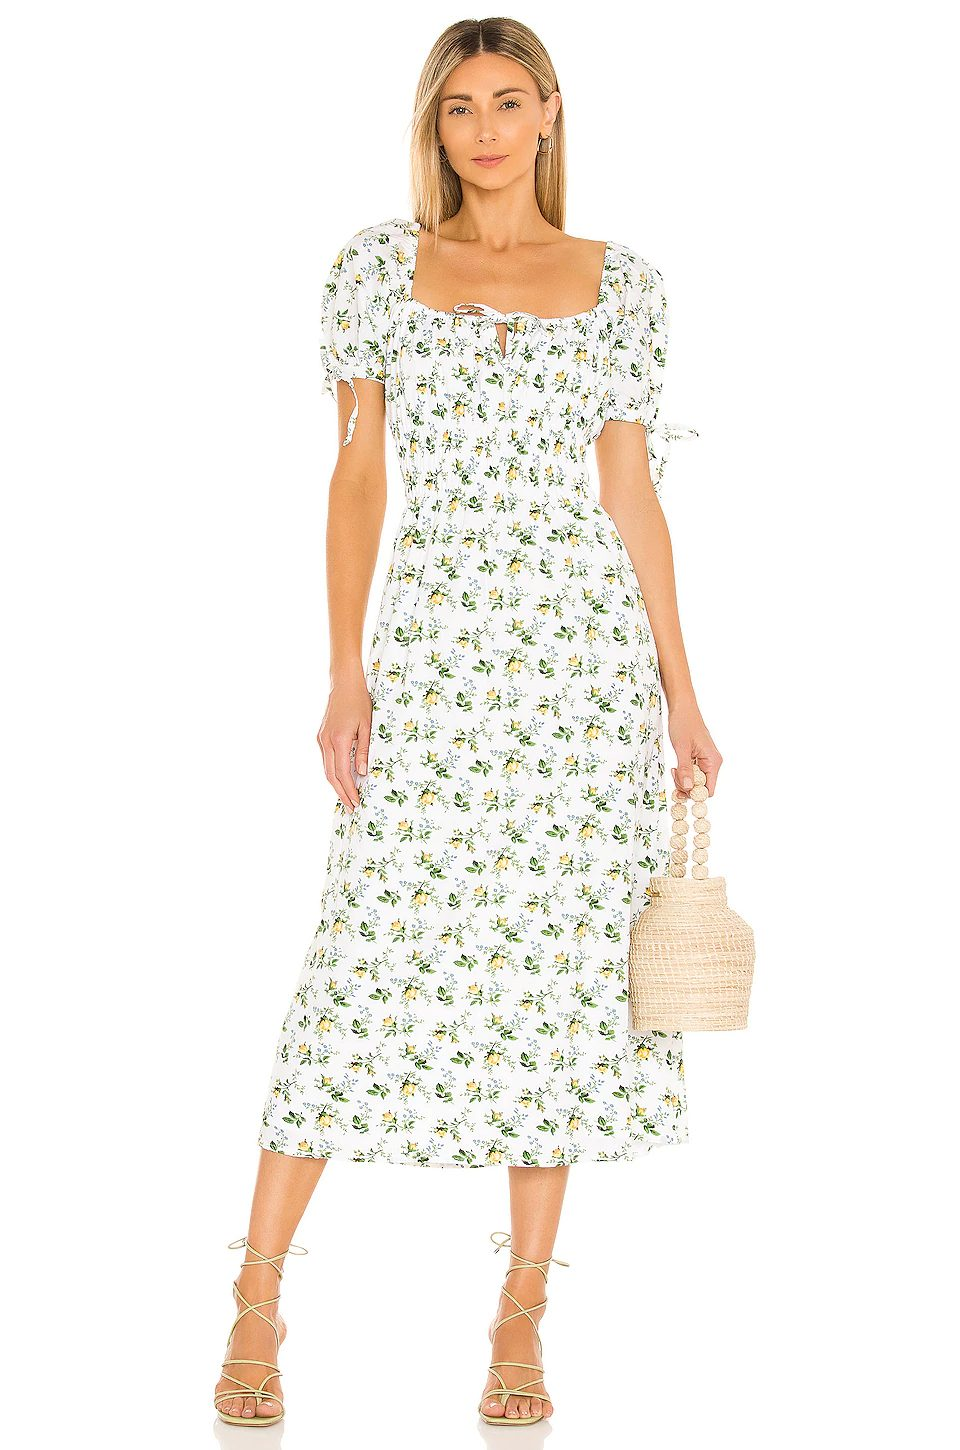 Cute floral dresses like Reformation from Faithfull the brand